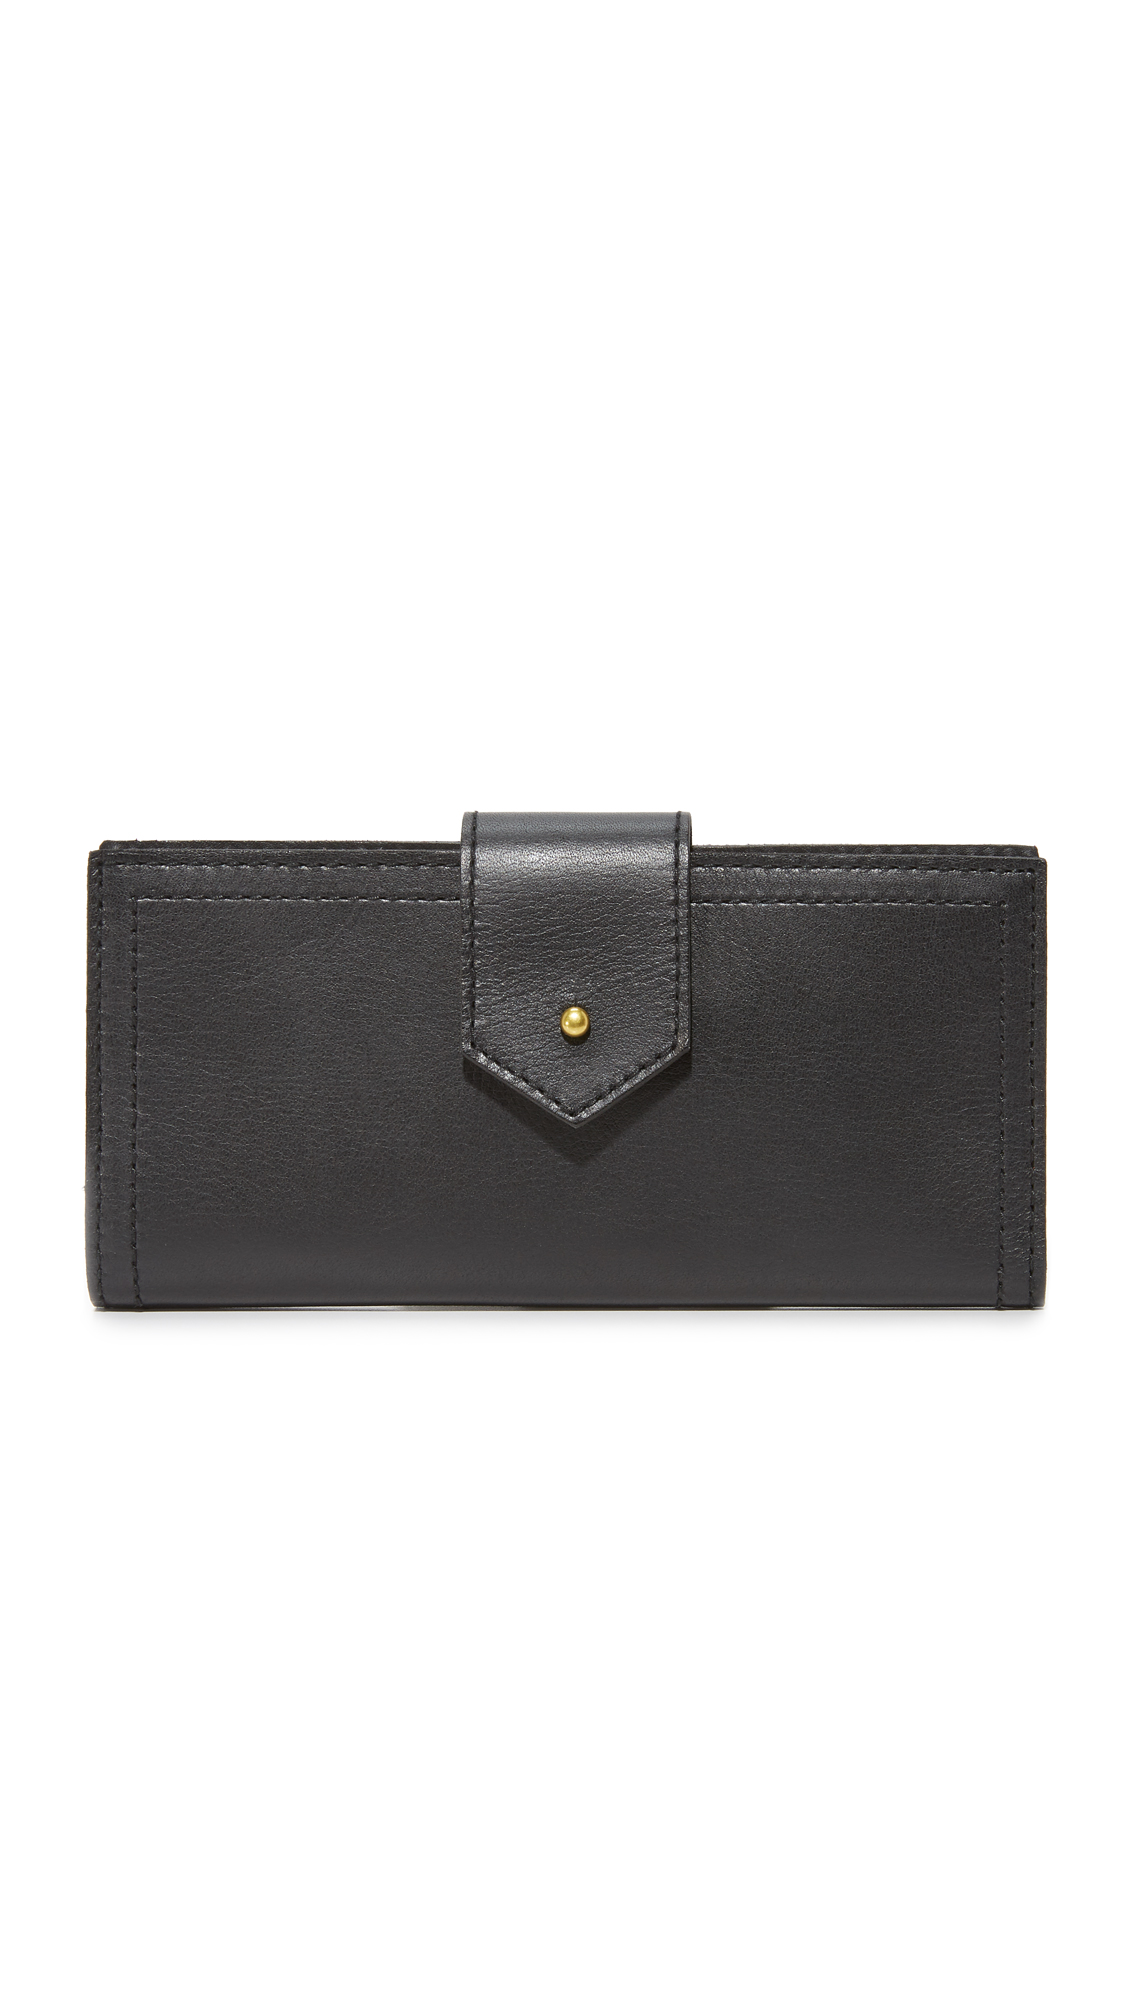 Madewell The Post Wallet - True Black